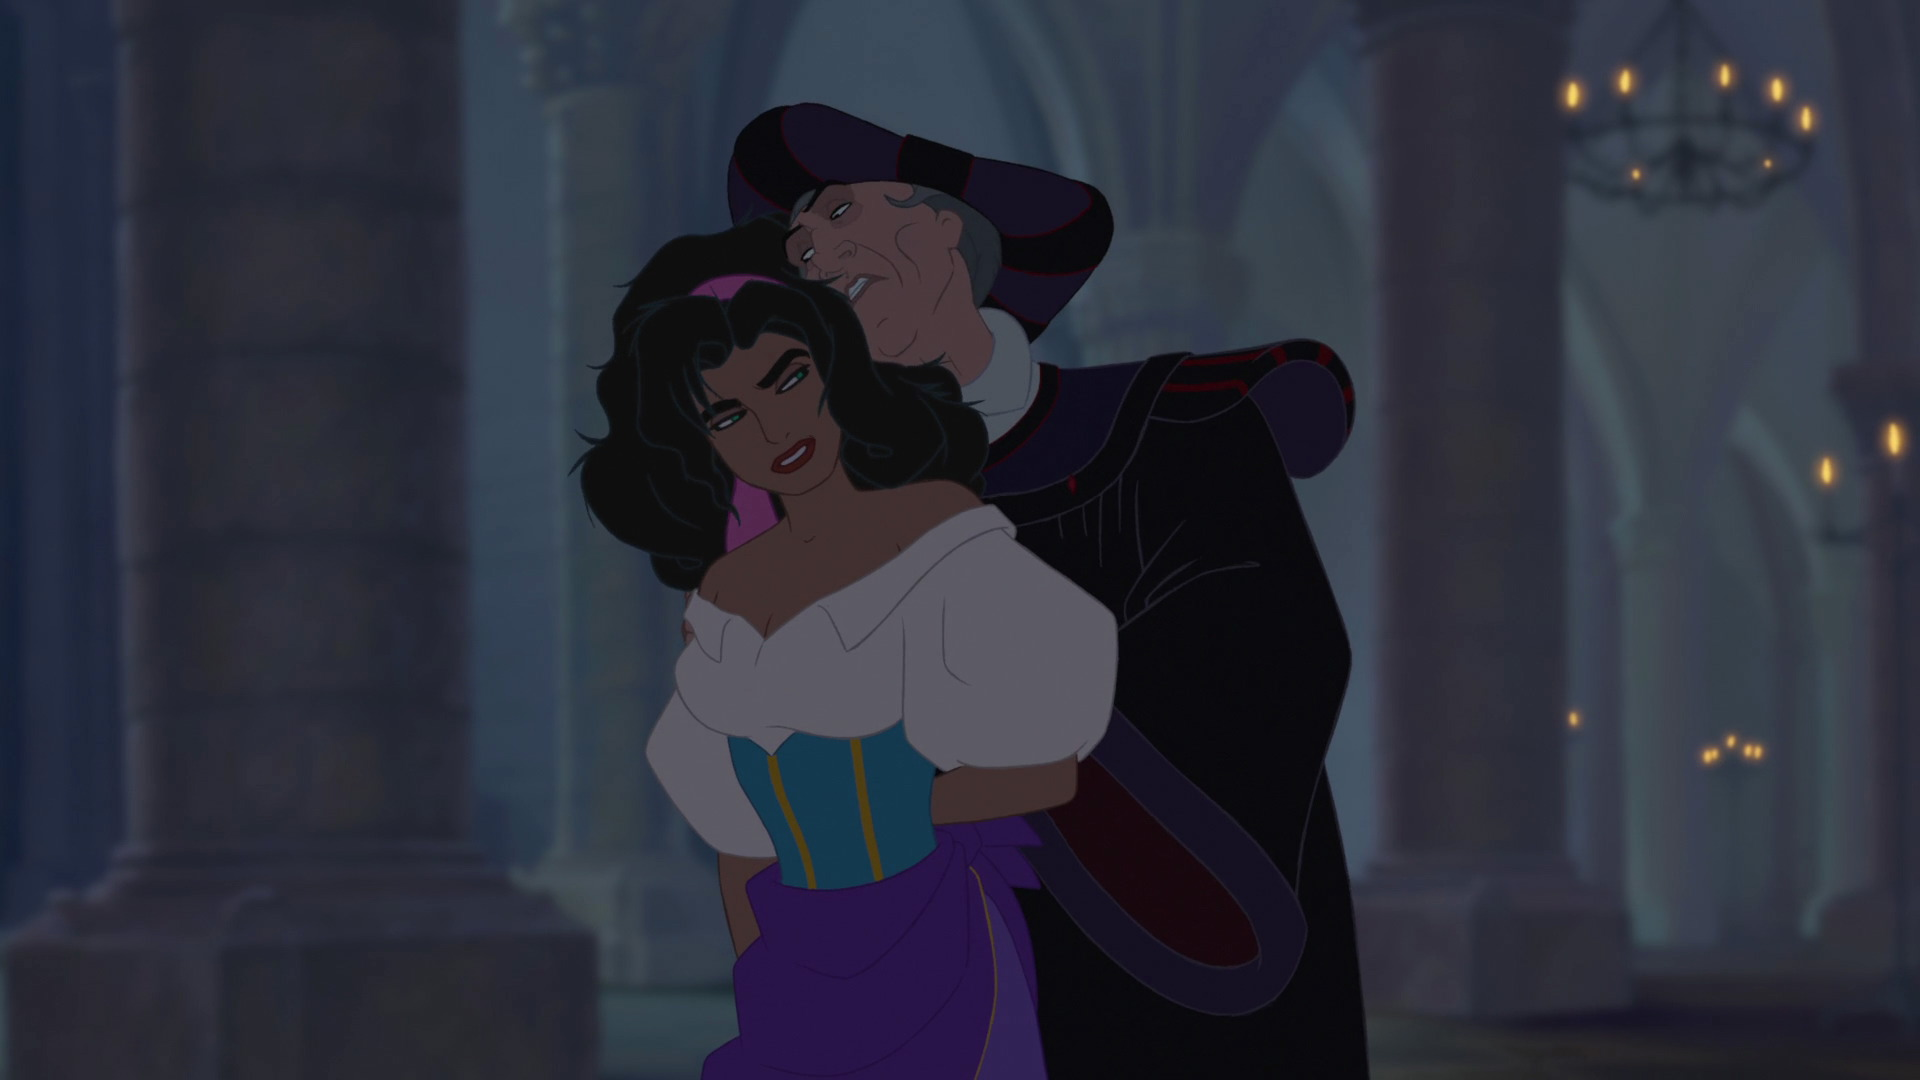 File:Judge Frollo & Esmeralda.jpg